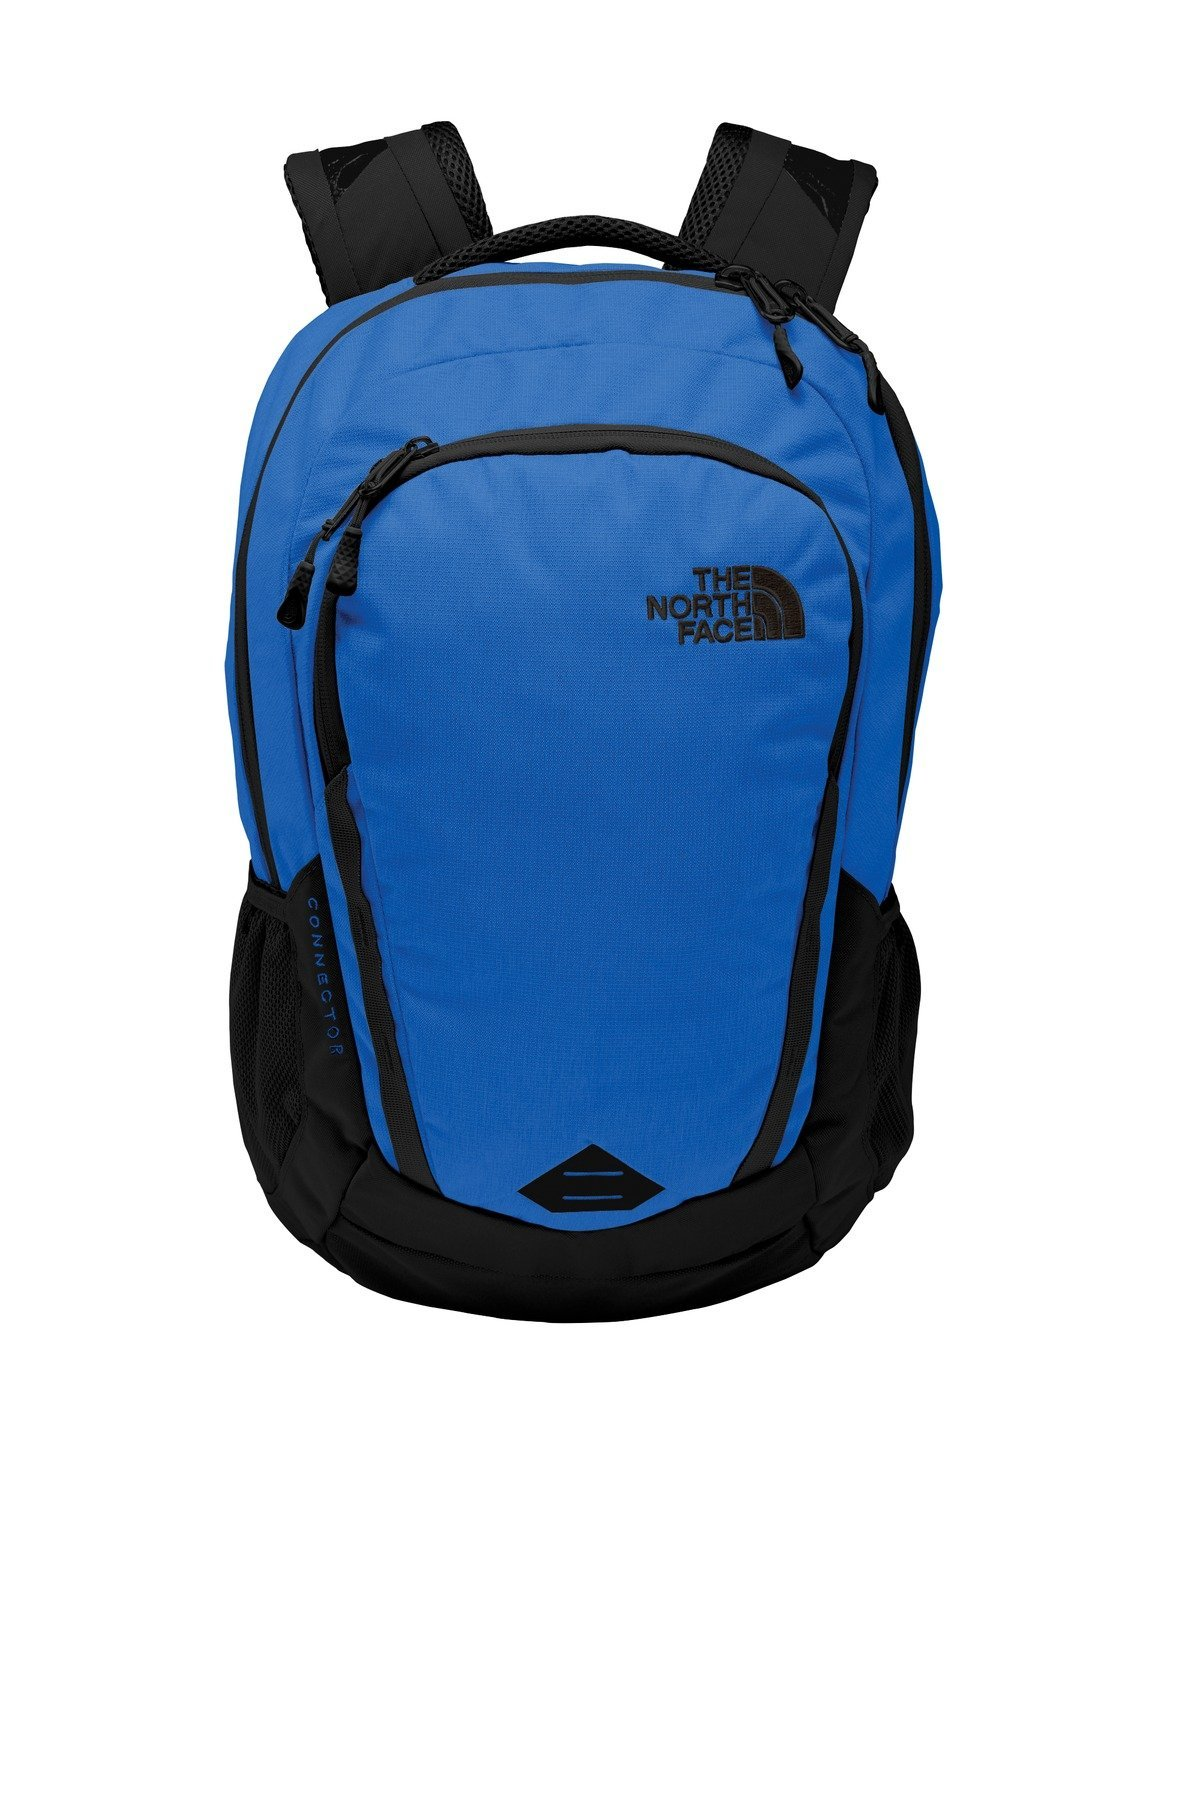 ef5978bfba The North Face Connector Backpack NF0A3KX8 Monster Blue/ TNF Black ...